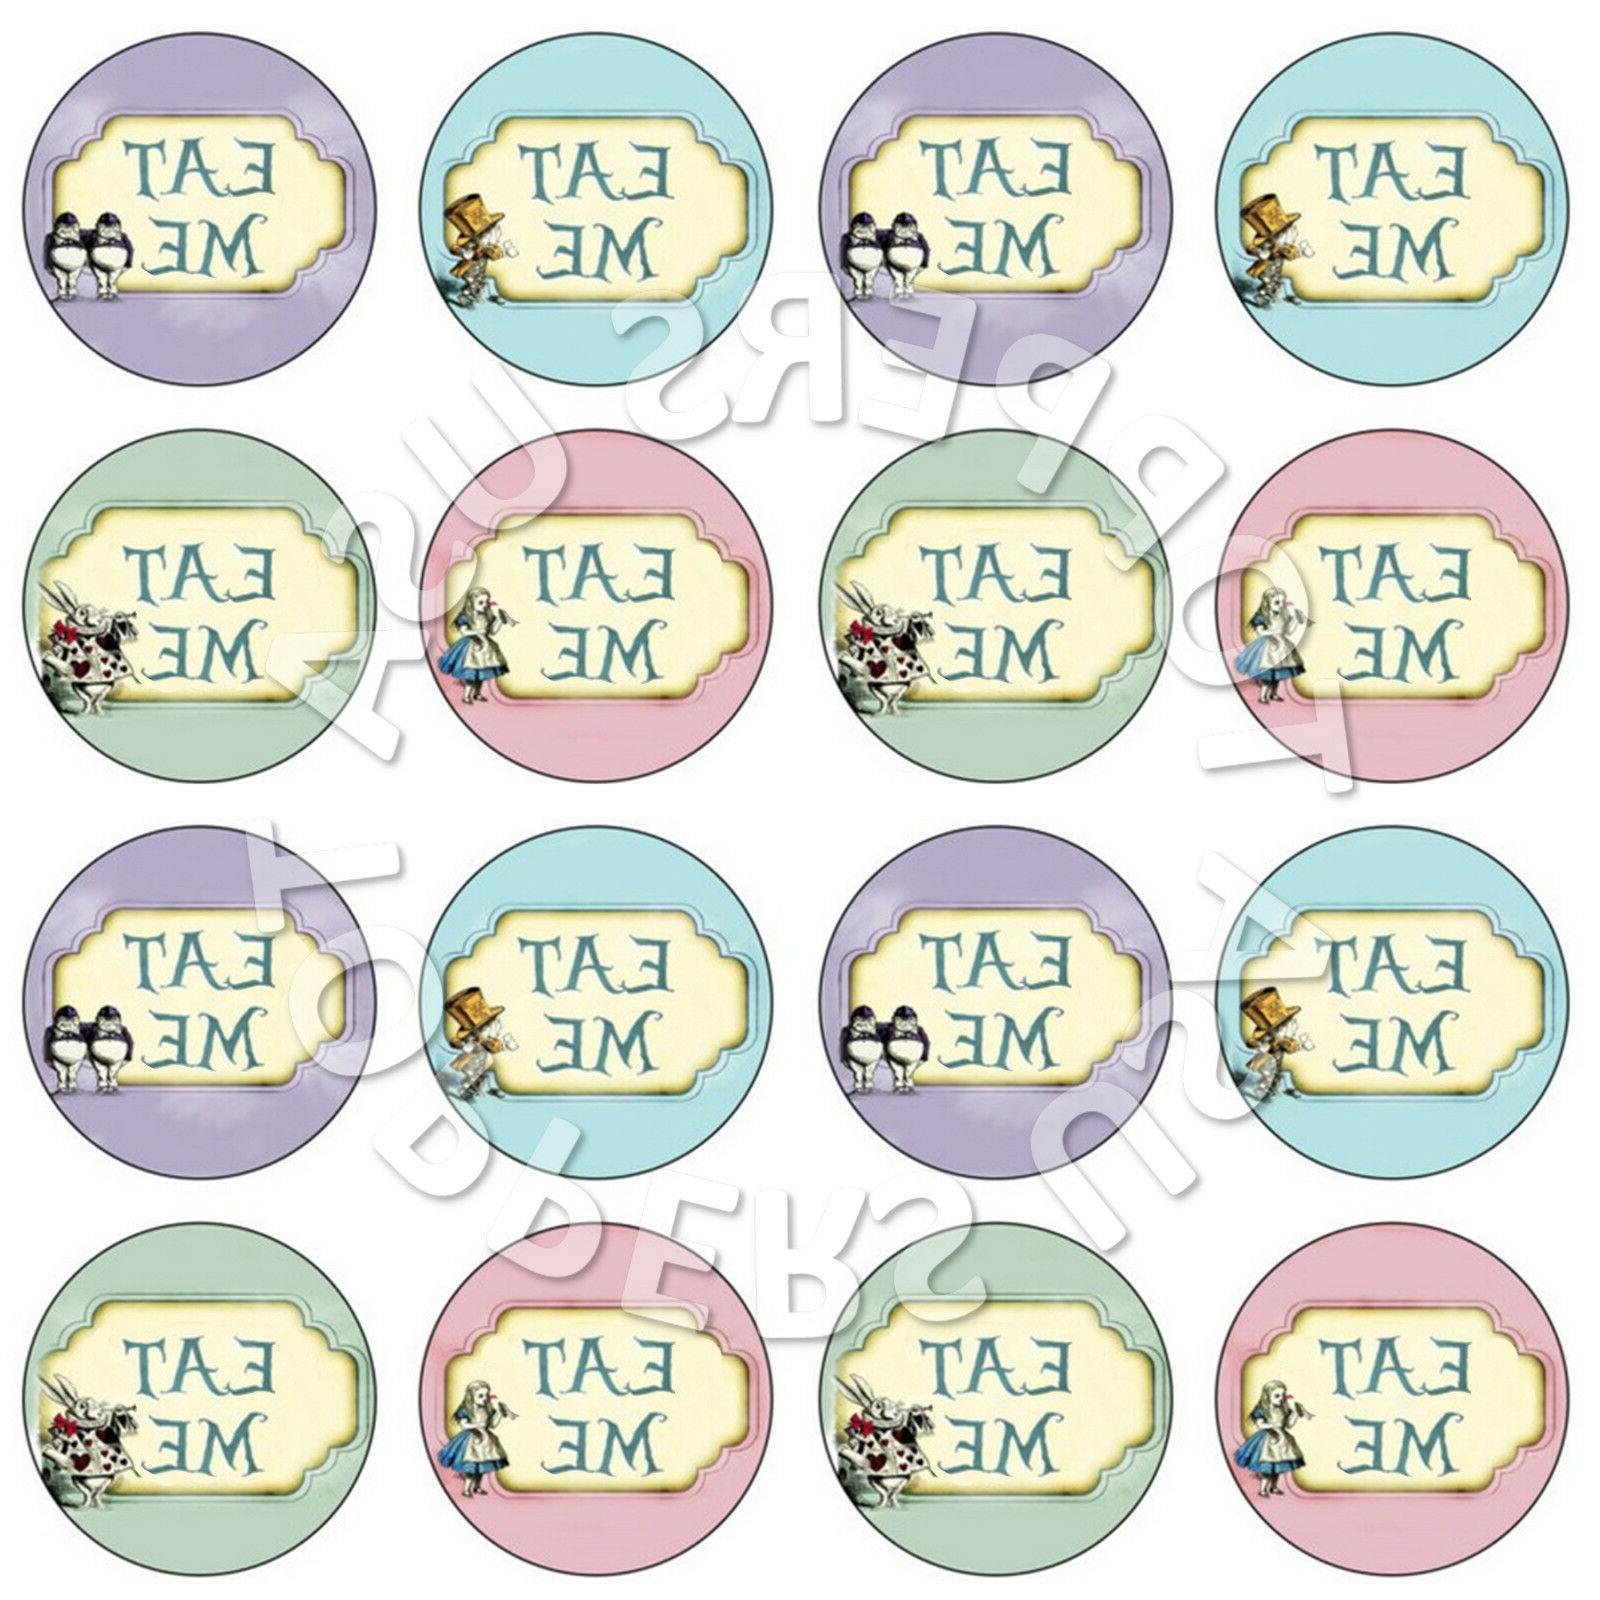 16x EDIBLE Alice in Wonderland Eat Me Cupcake Toppers Wafer